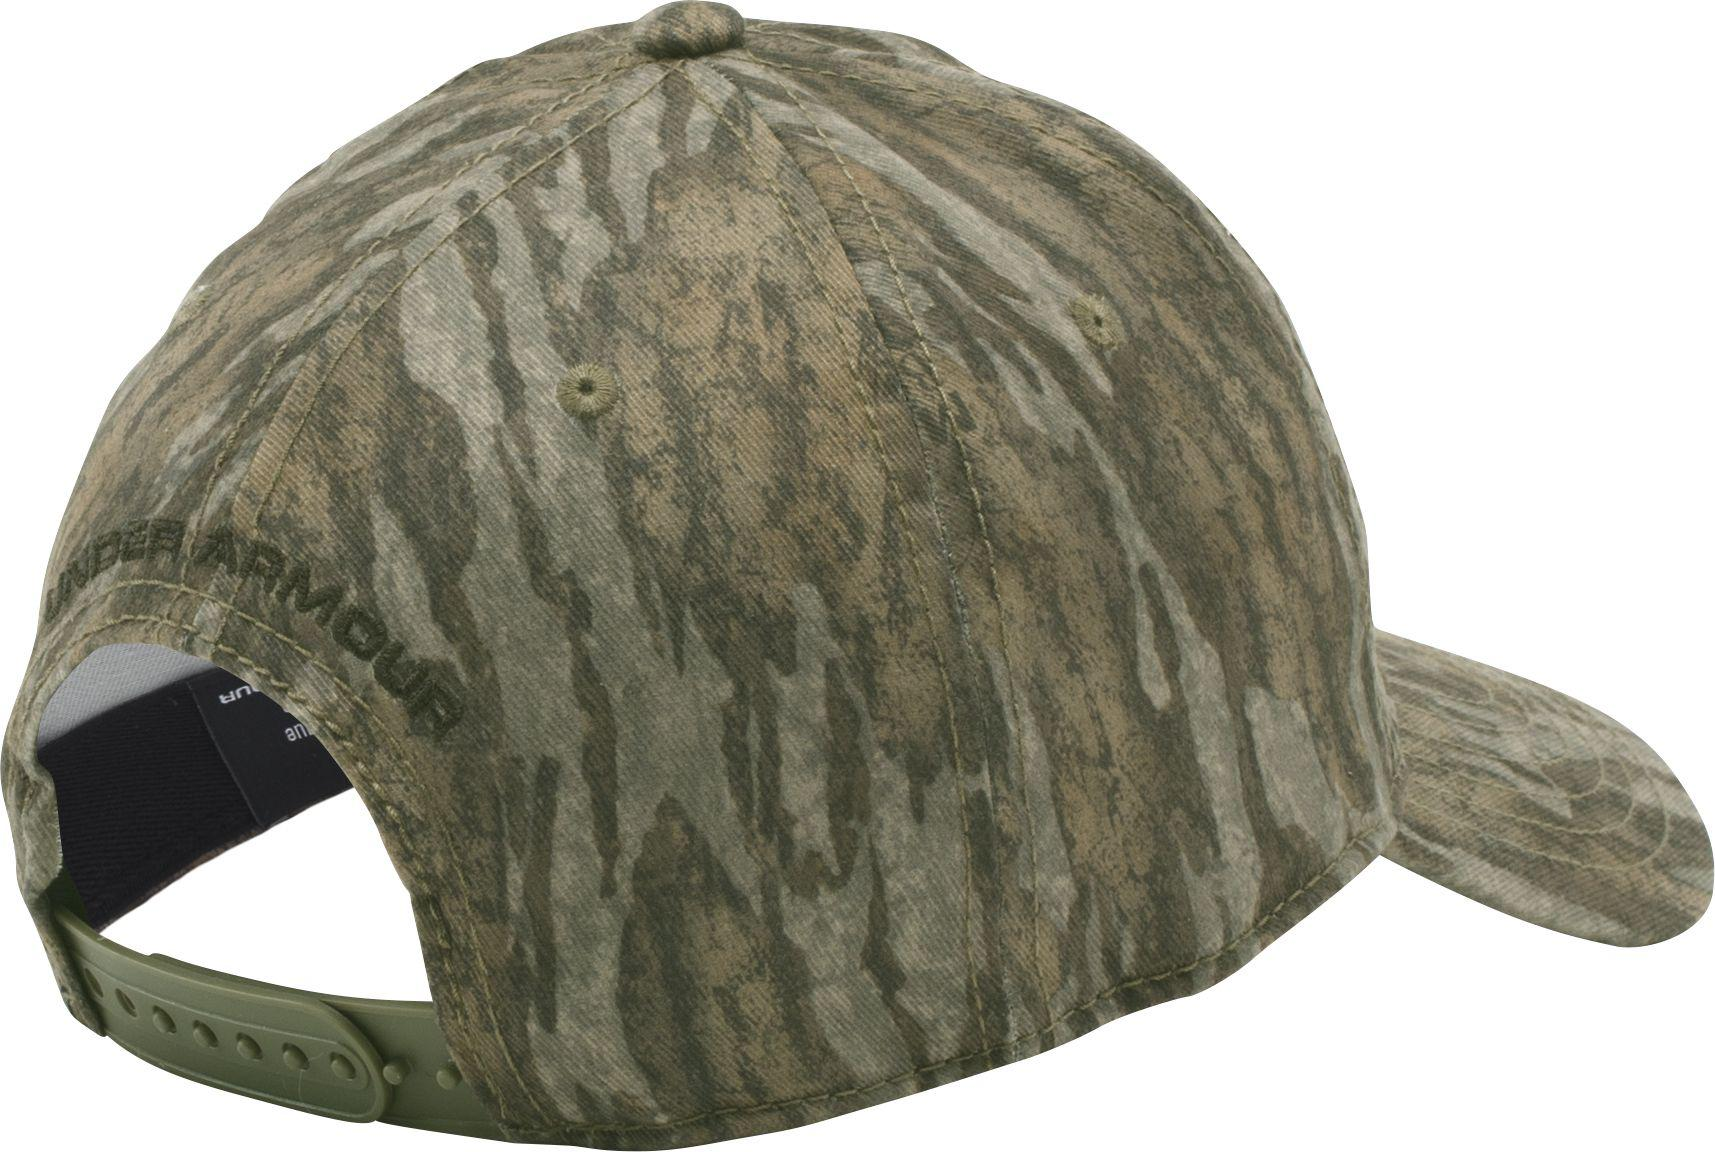 a169a51df81 ... italy lyst under armour camo hat in green for men db7c8 a920c